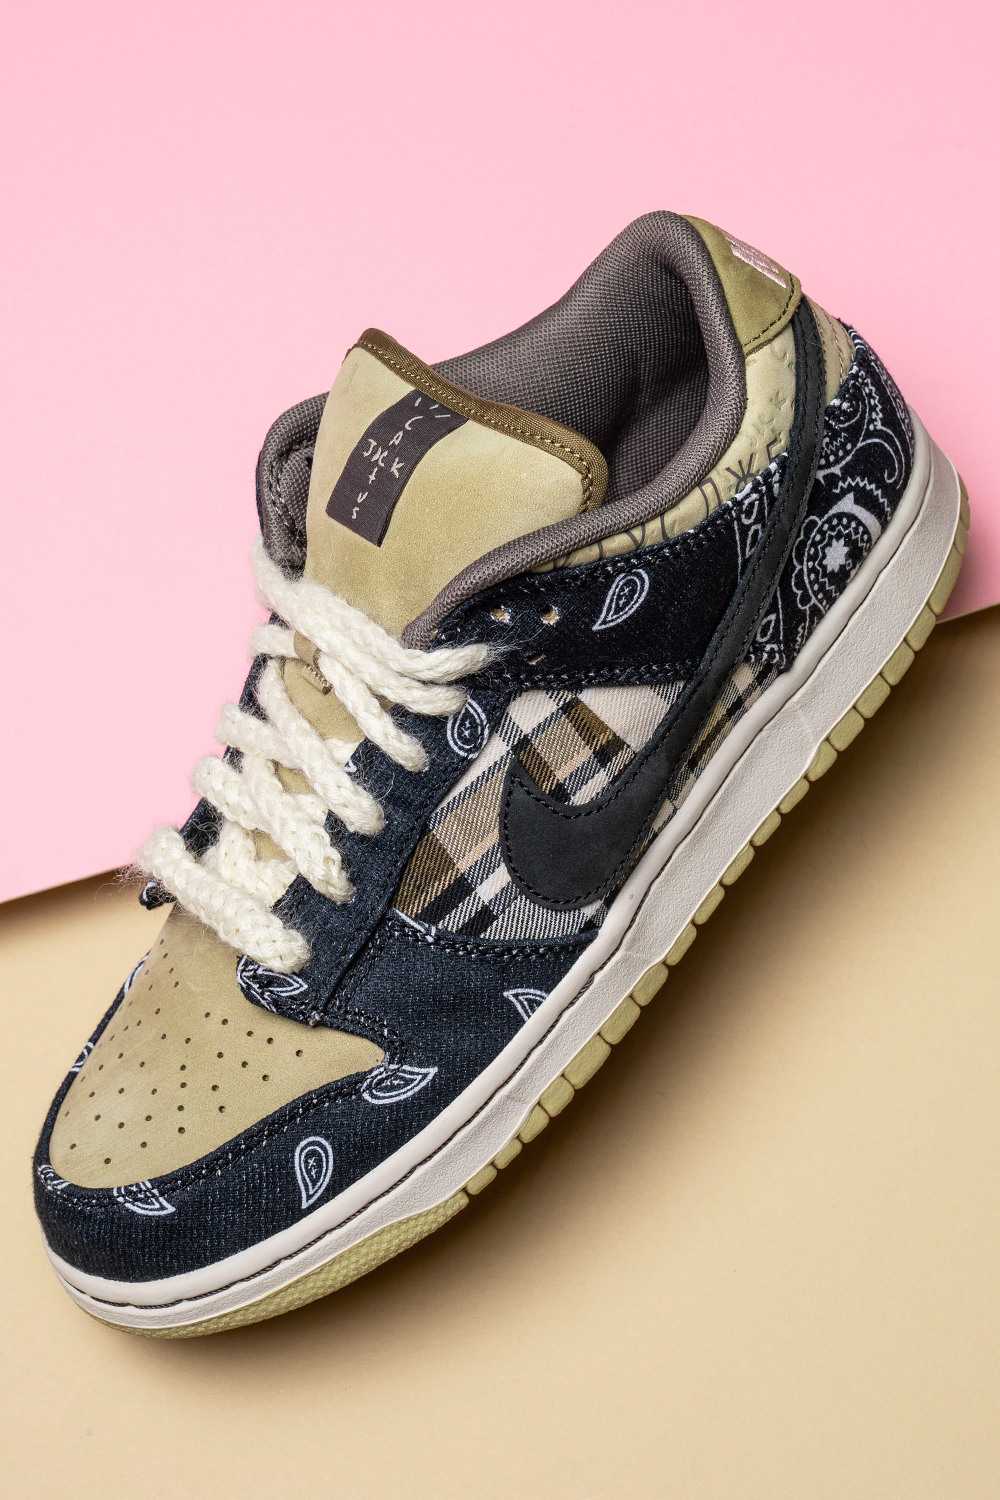 Nike Sb Dunk Low Travis Scott Ct5053 001 2020 In 2020 Sneakers Men Fashion Travis Scott Shoes Nike Shoes Outfits